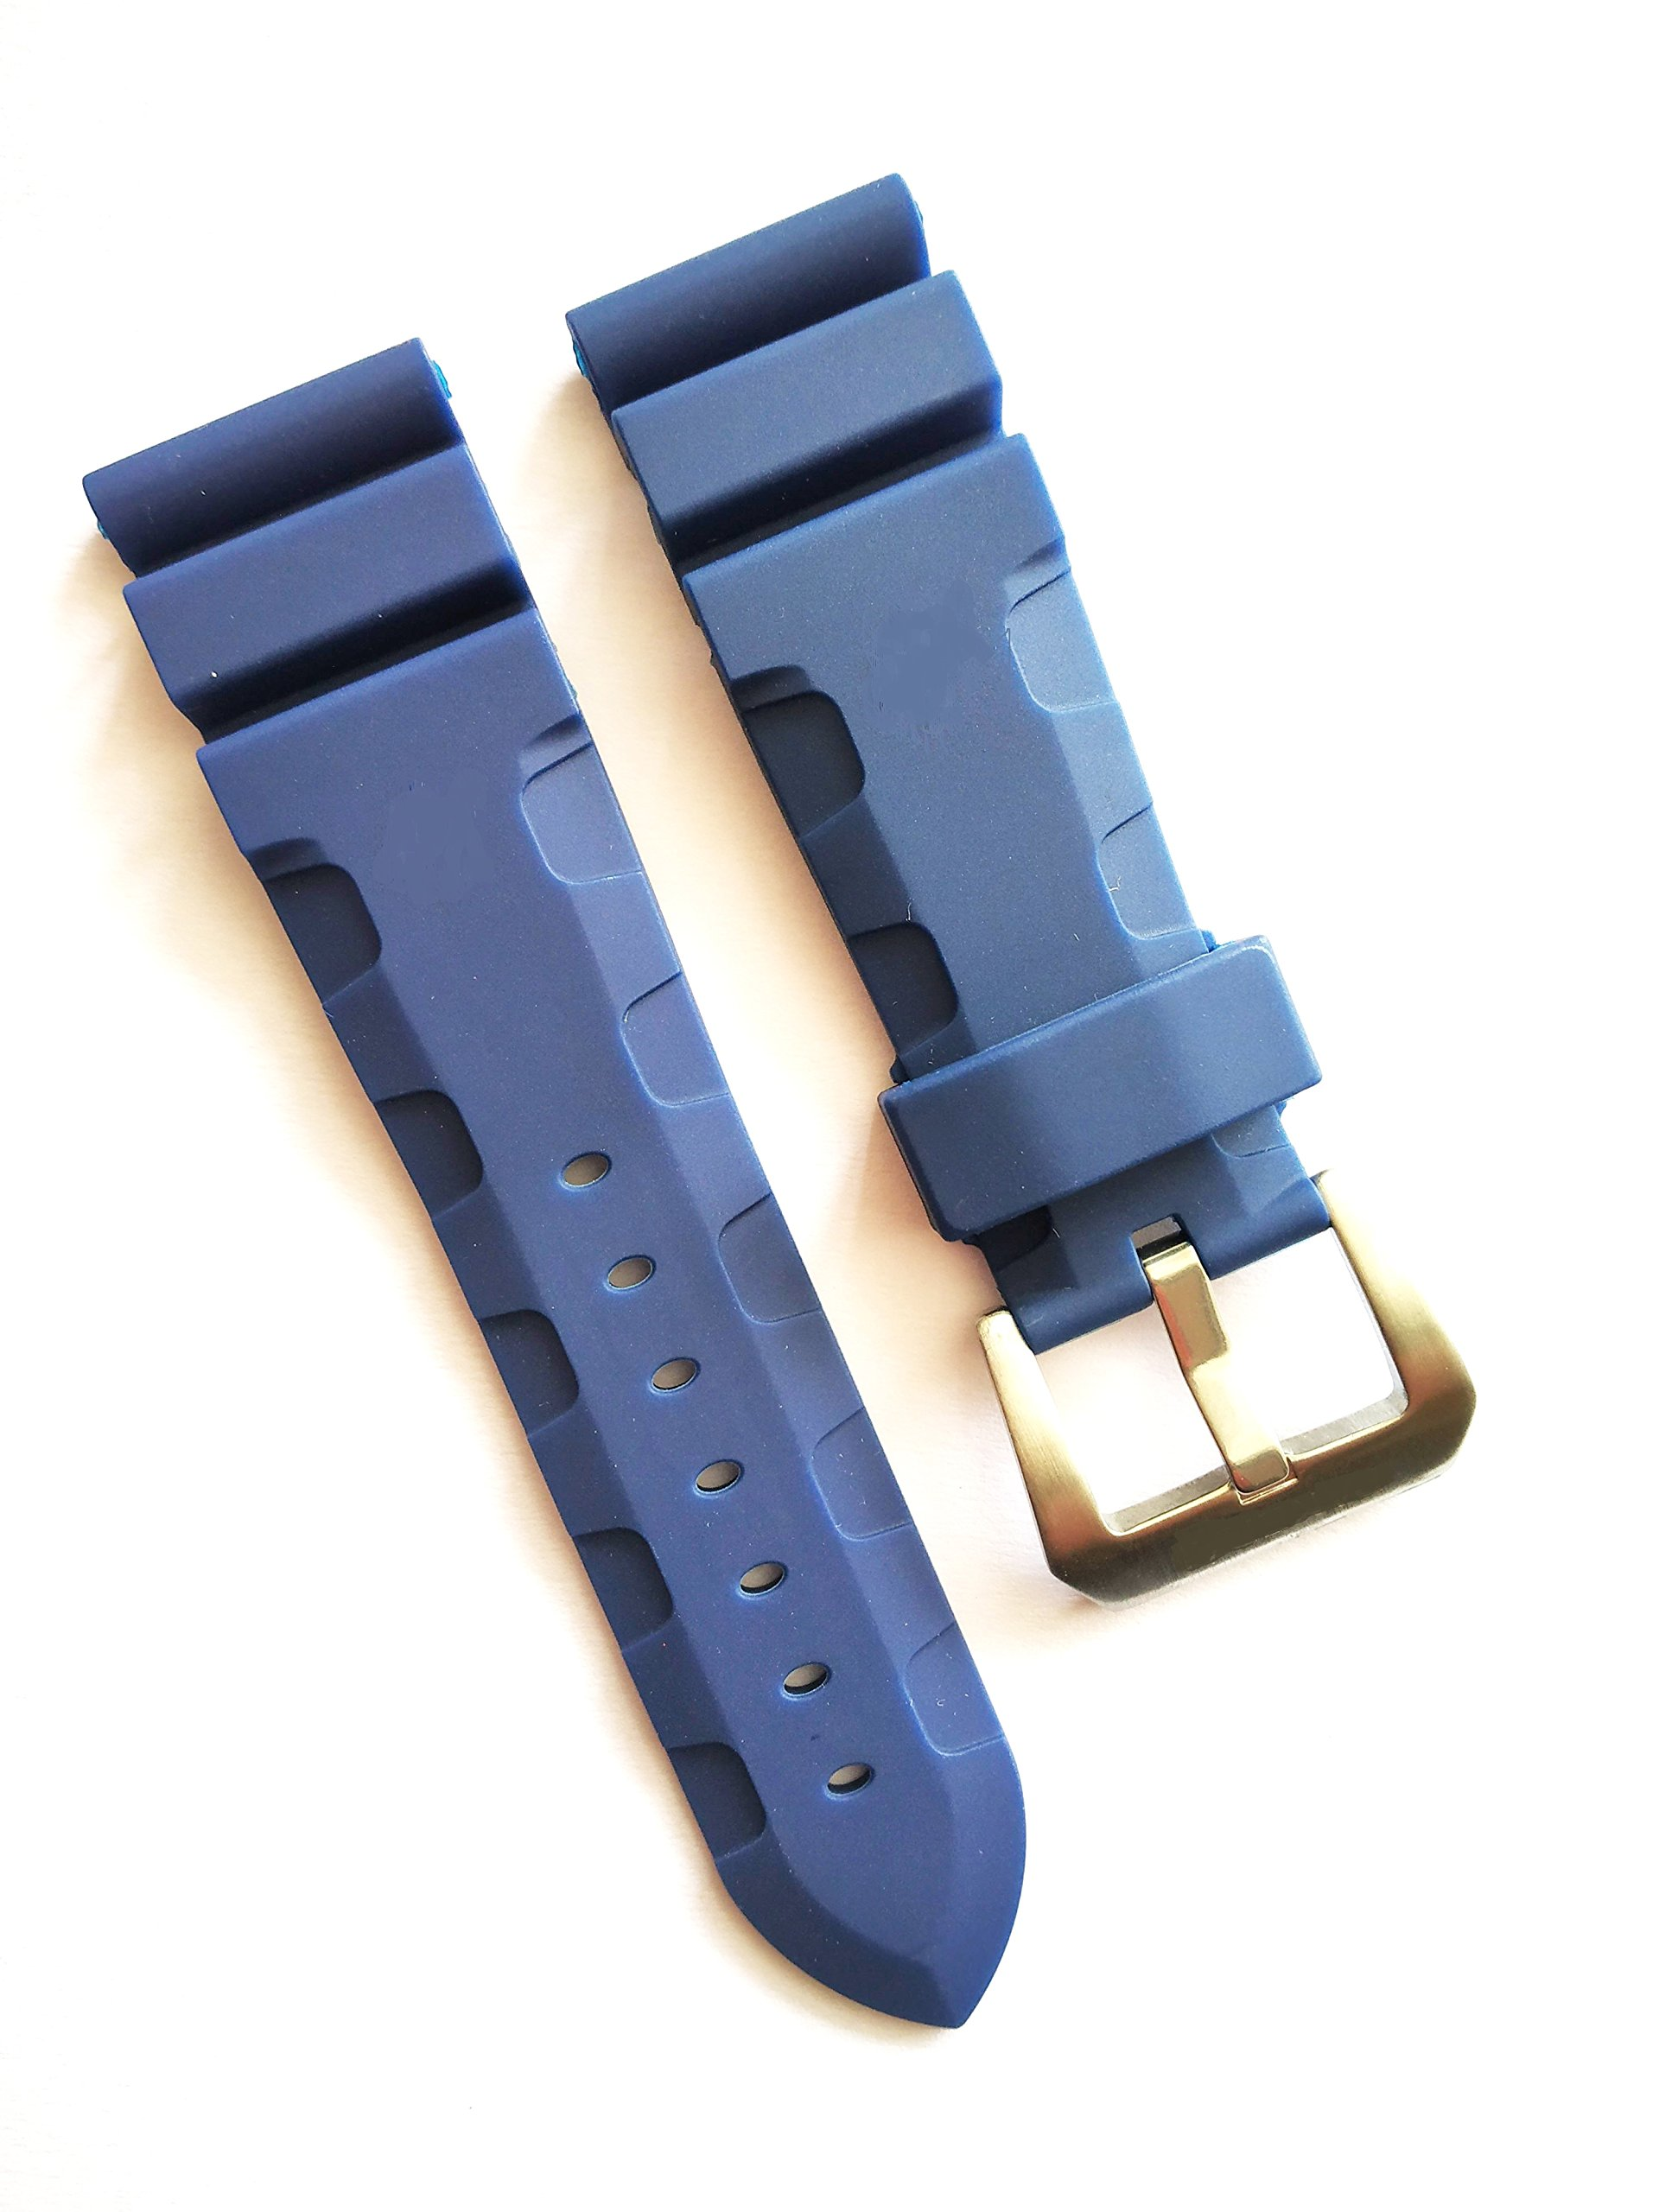 Compatible 24mm Blue Rubber Watch Strap Band Fits Alt Panerai by UnBranded/Generic